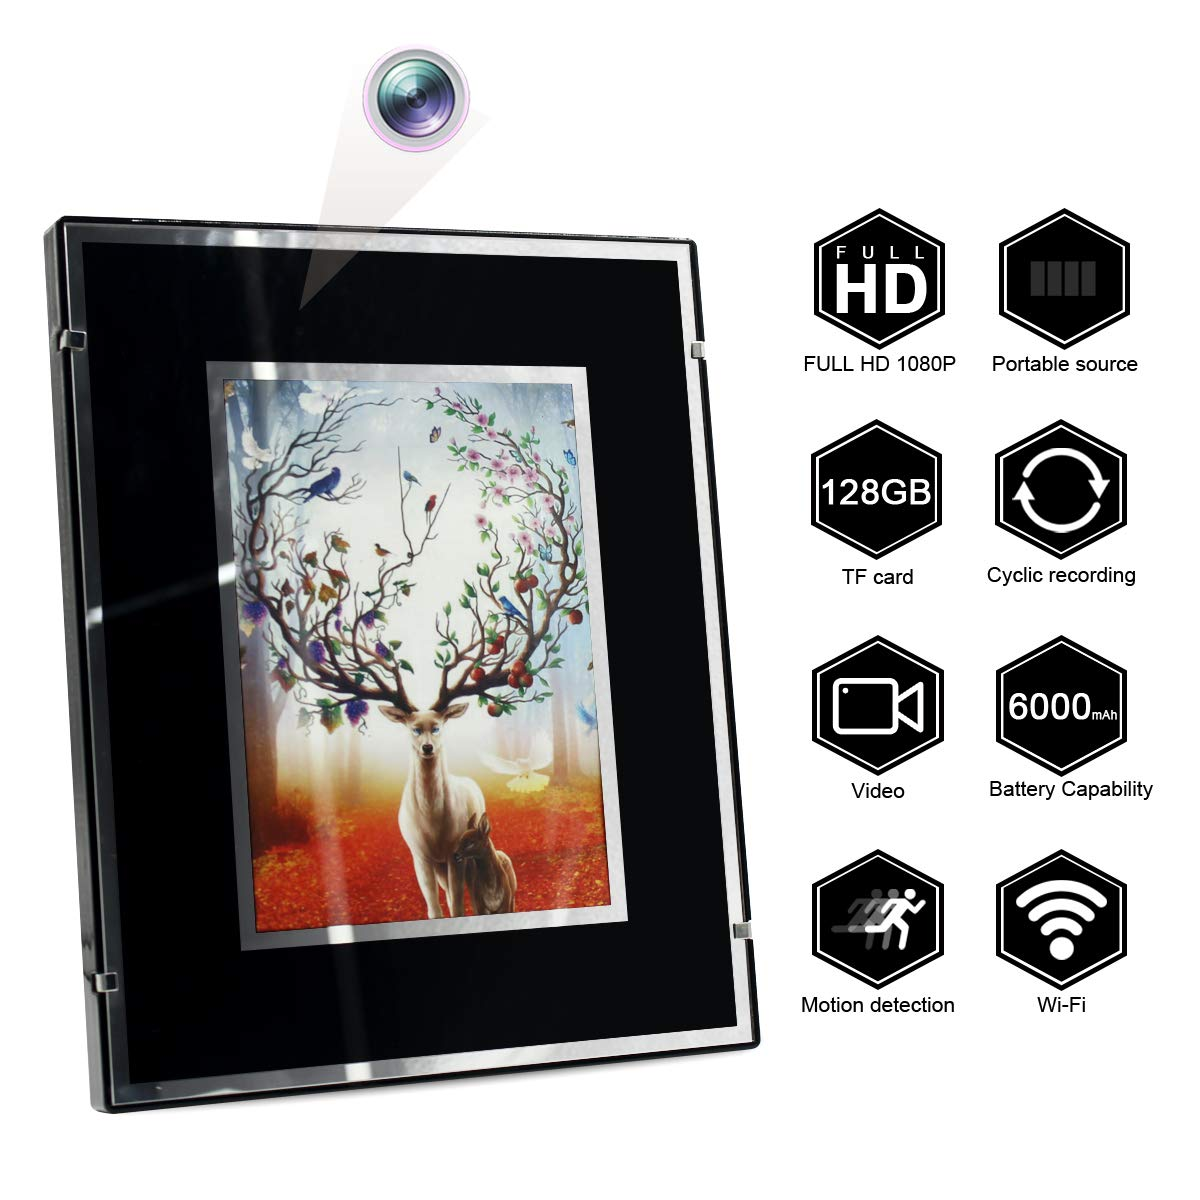 Indoor Portable Security Camera for Home Office Surveillance HD 1080P //6000mAh //Night Vision//Motion Detection//Loop Recording Wi-Fi Nanny Cam Winsper Hidden Spy Camera Photo Frame